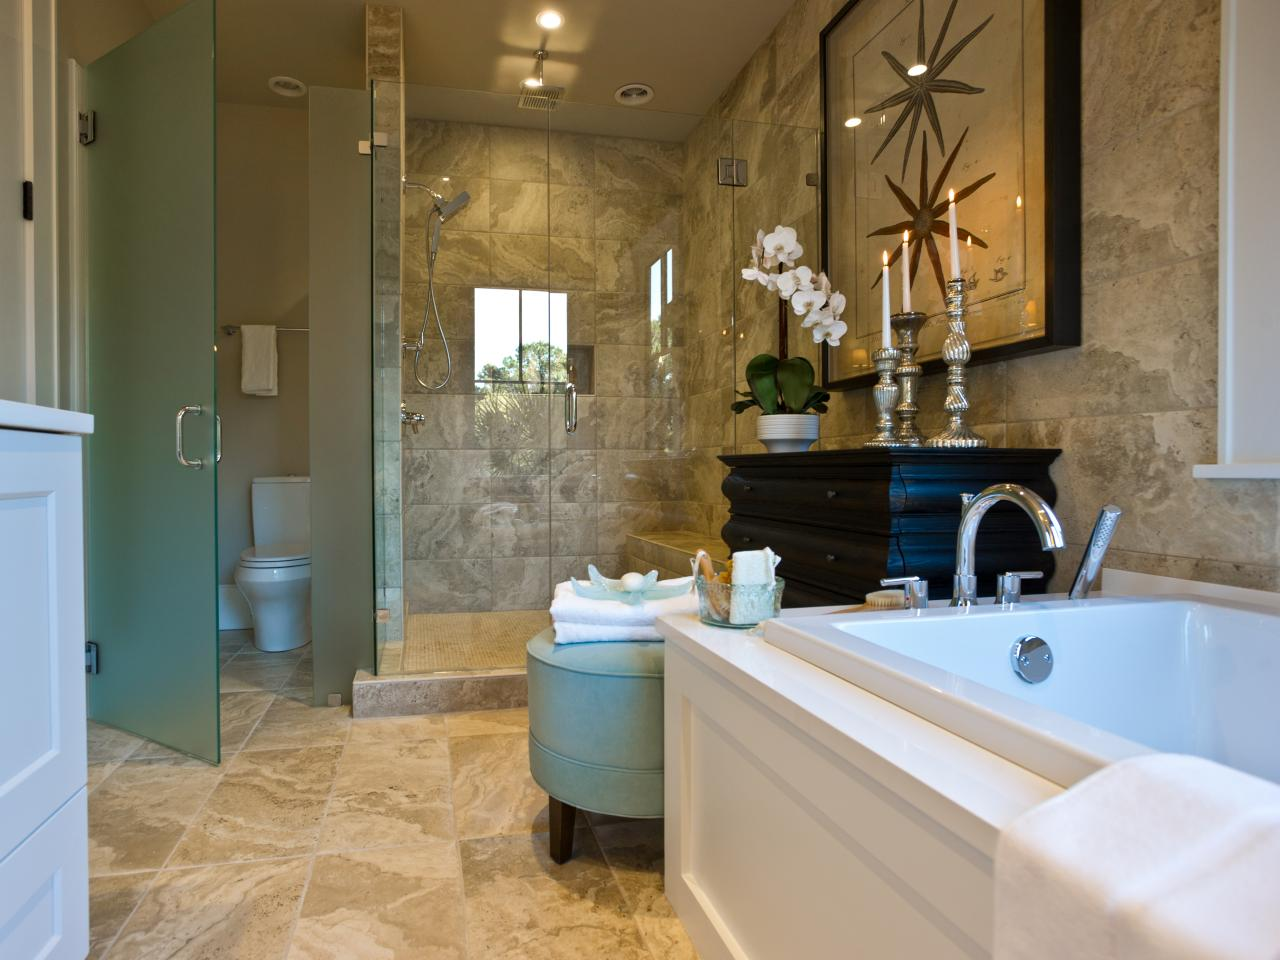 Hgtv dream home 2013 master bathroom pictures and video for Bathroom suite ideas